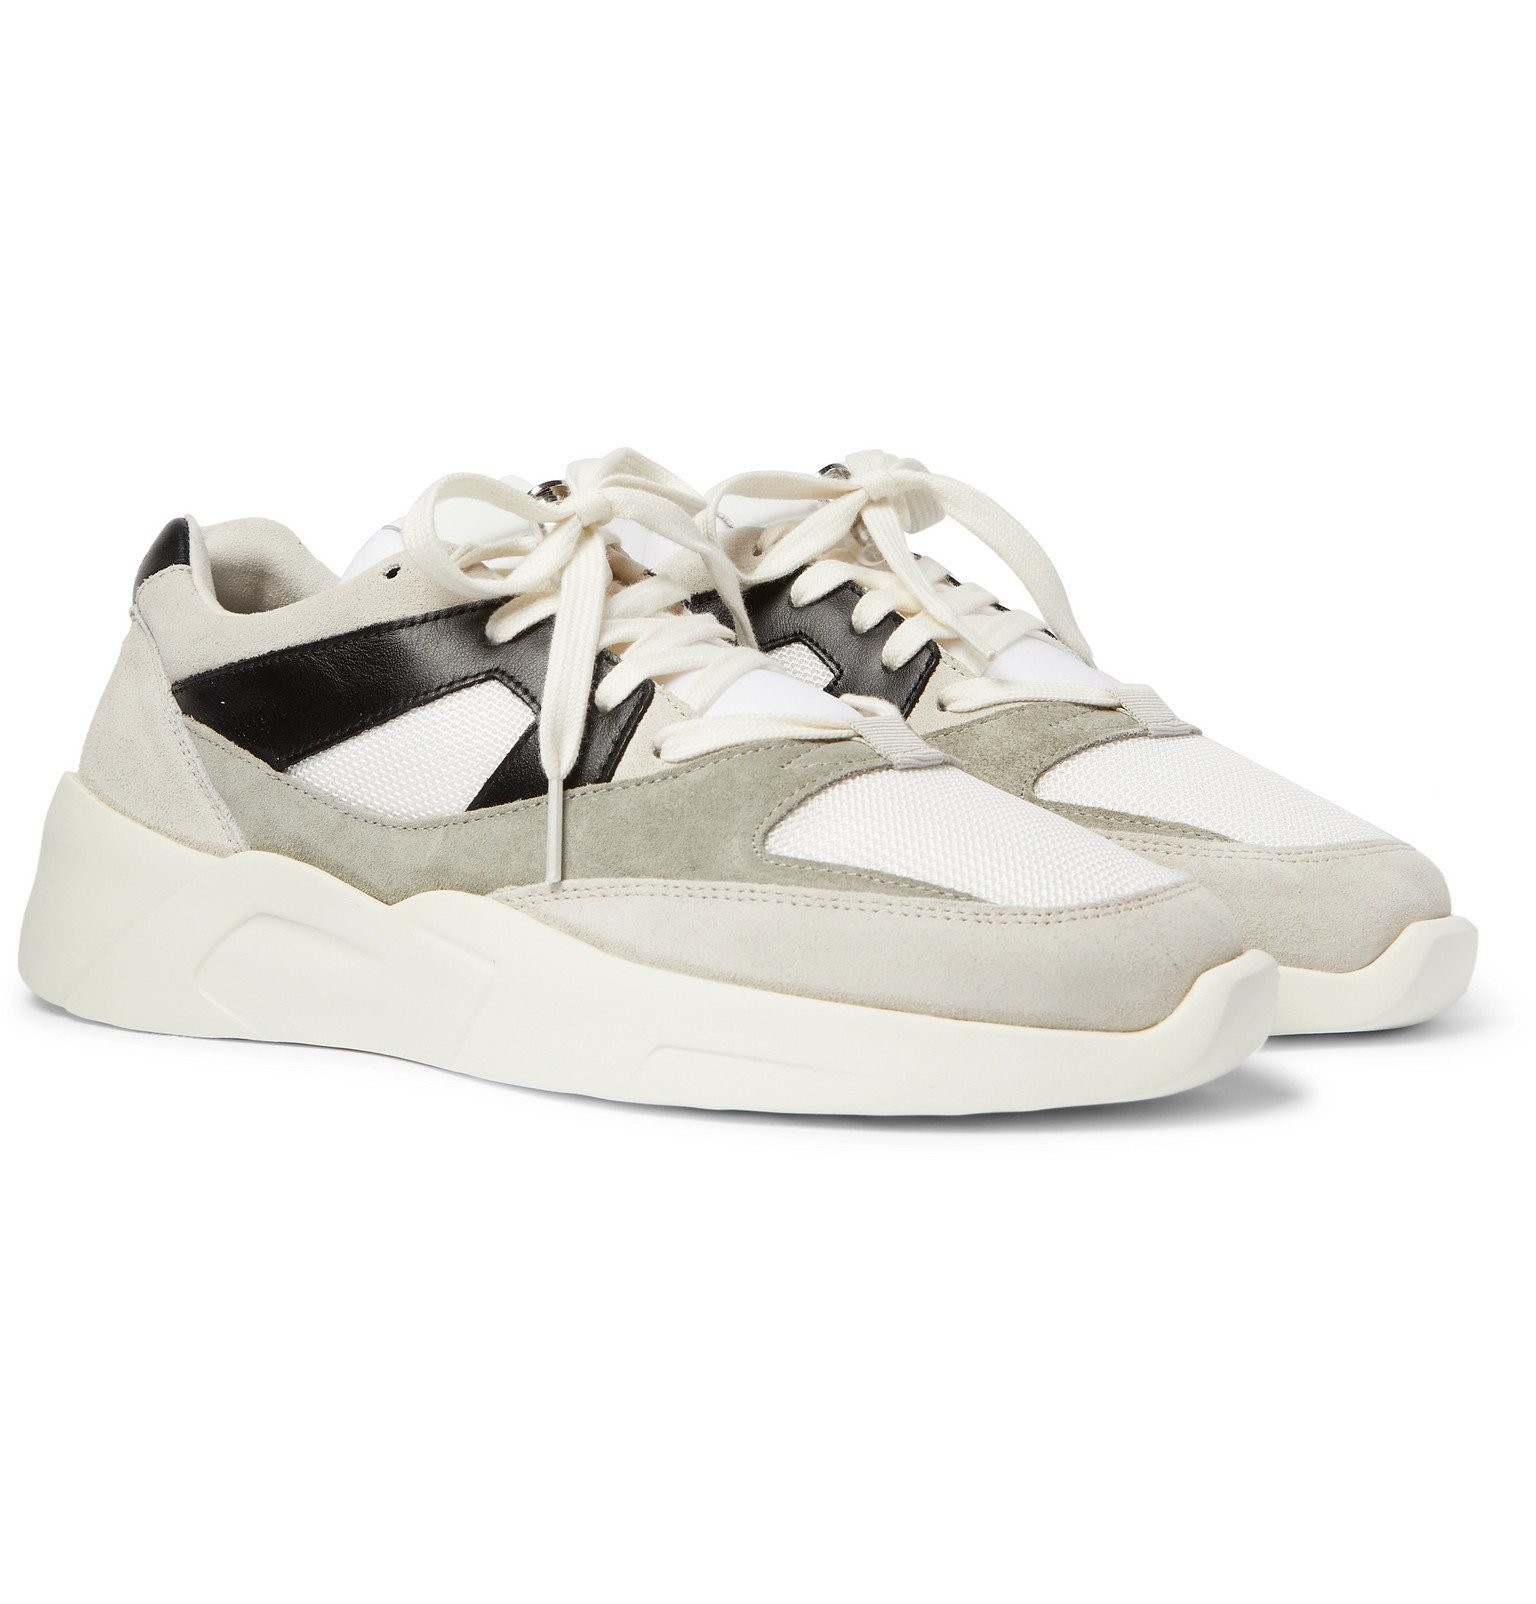 Leather-Trimmed Suede and Mesh Sneakers